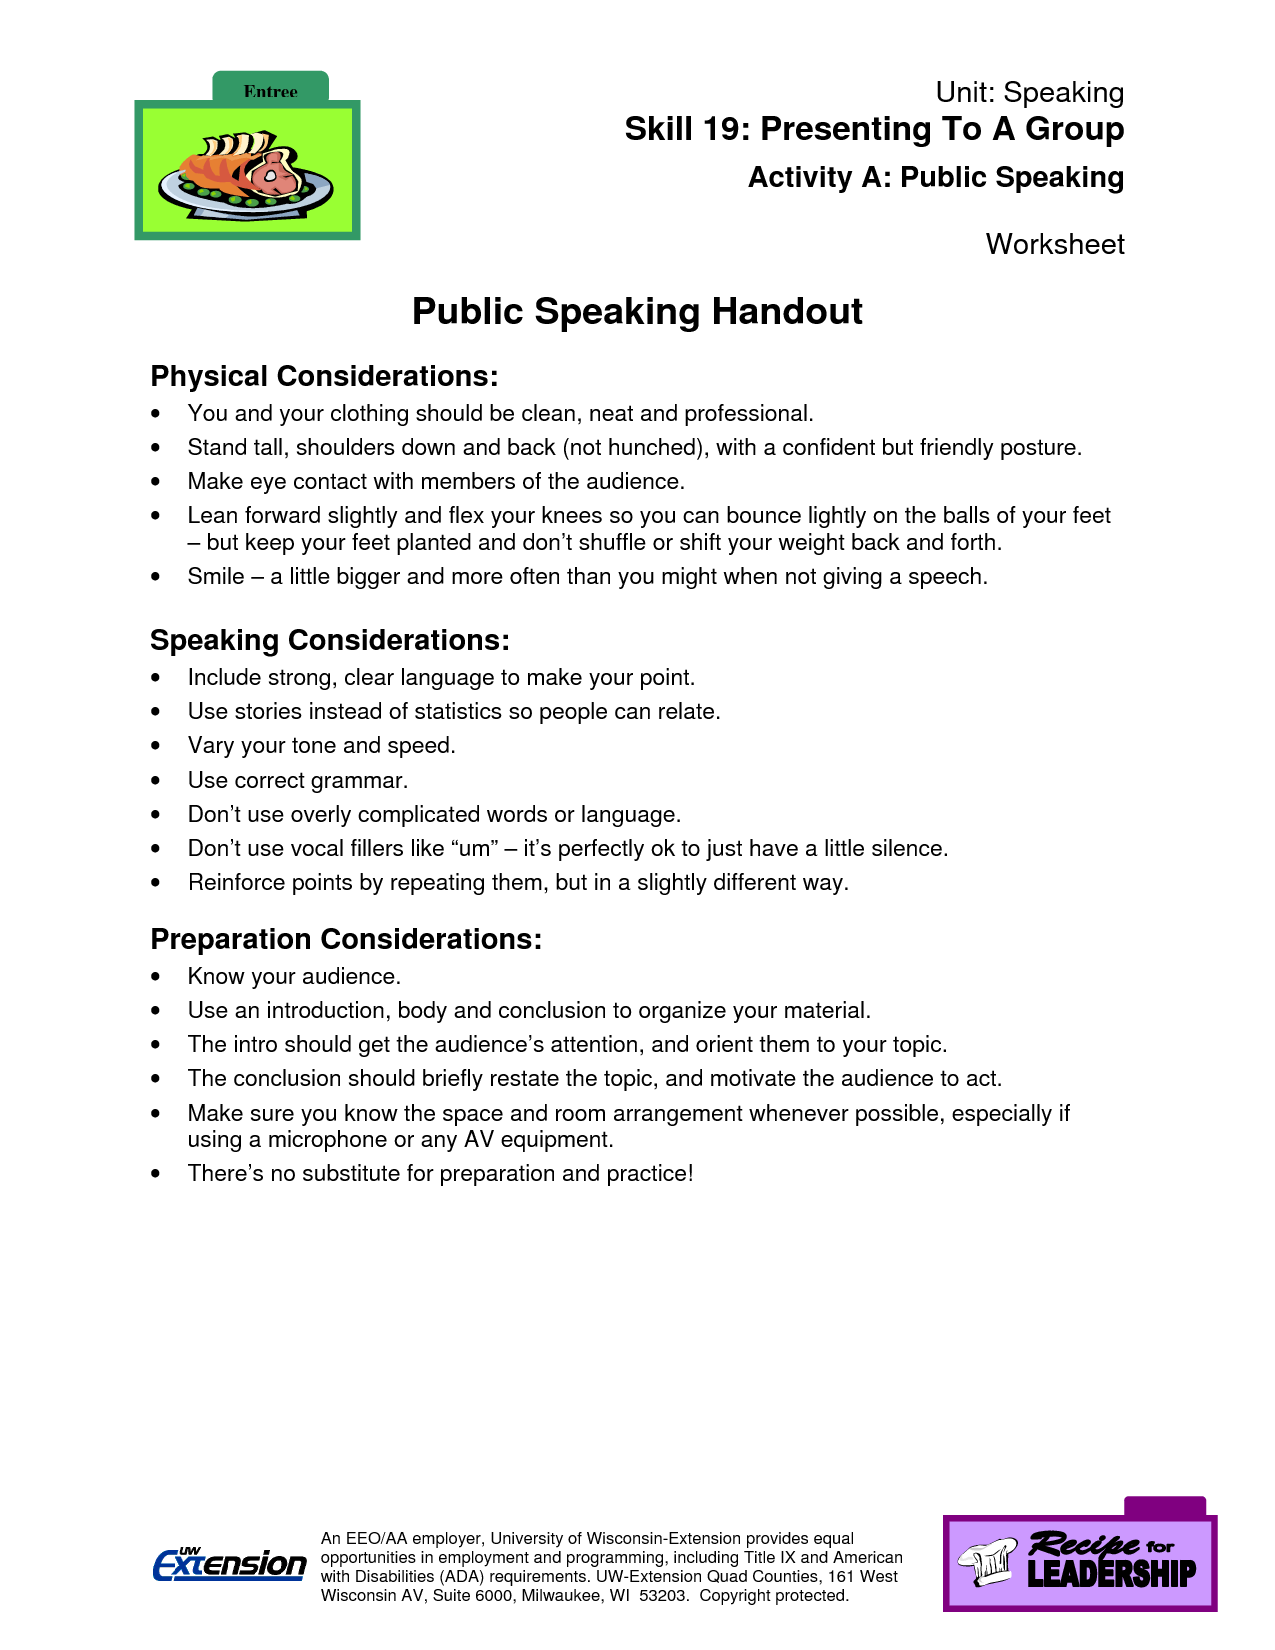 Public Speaking Worksheets